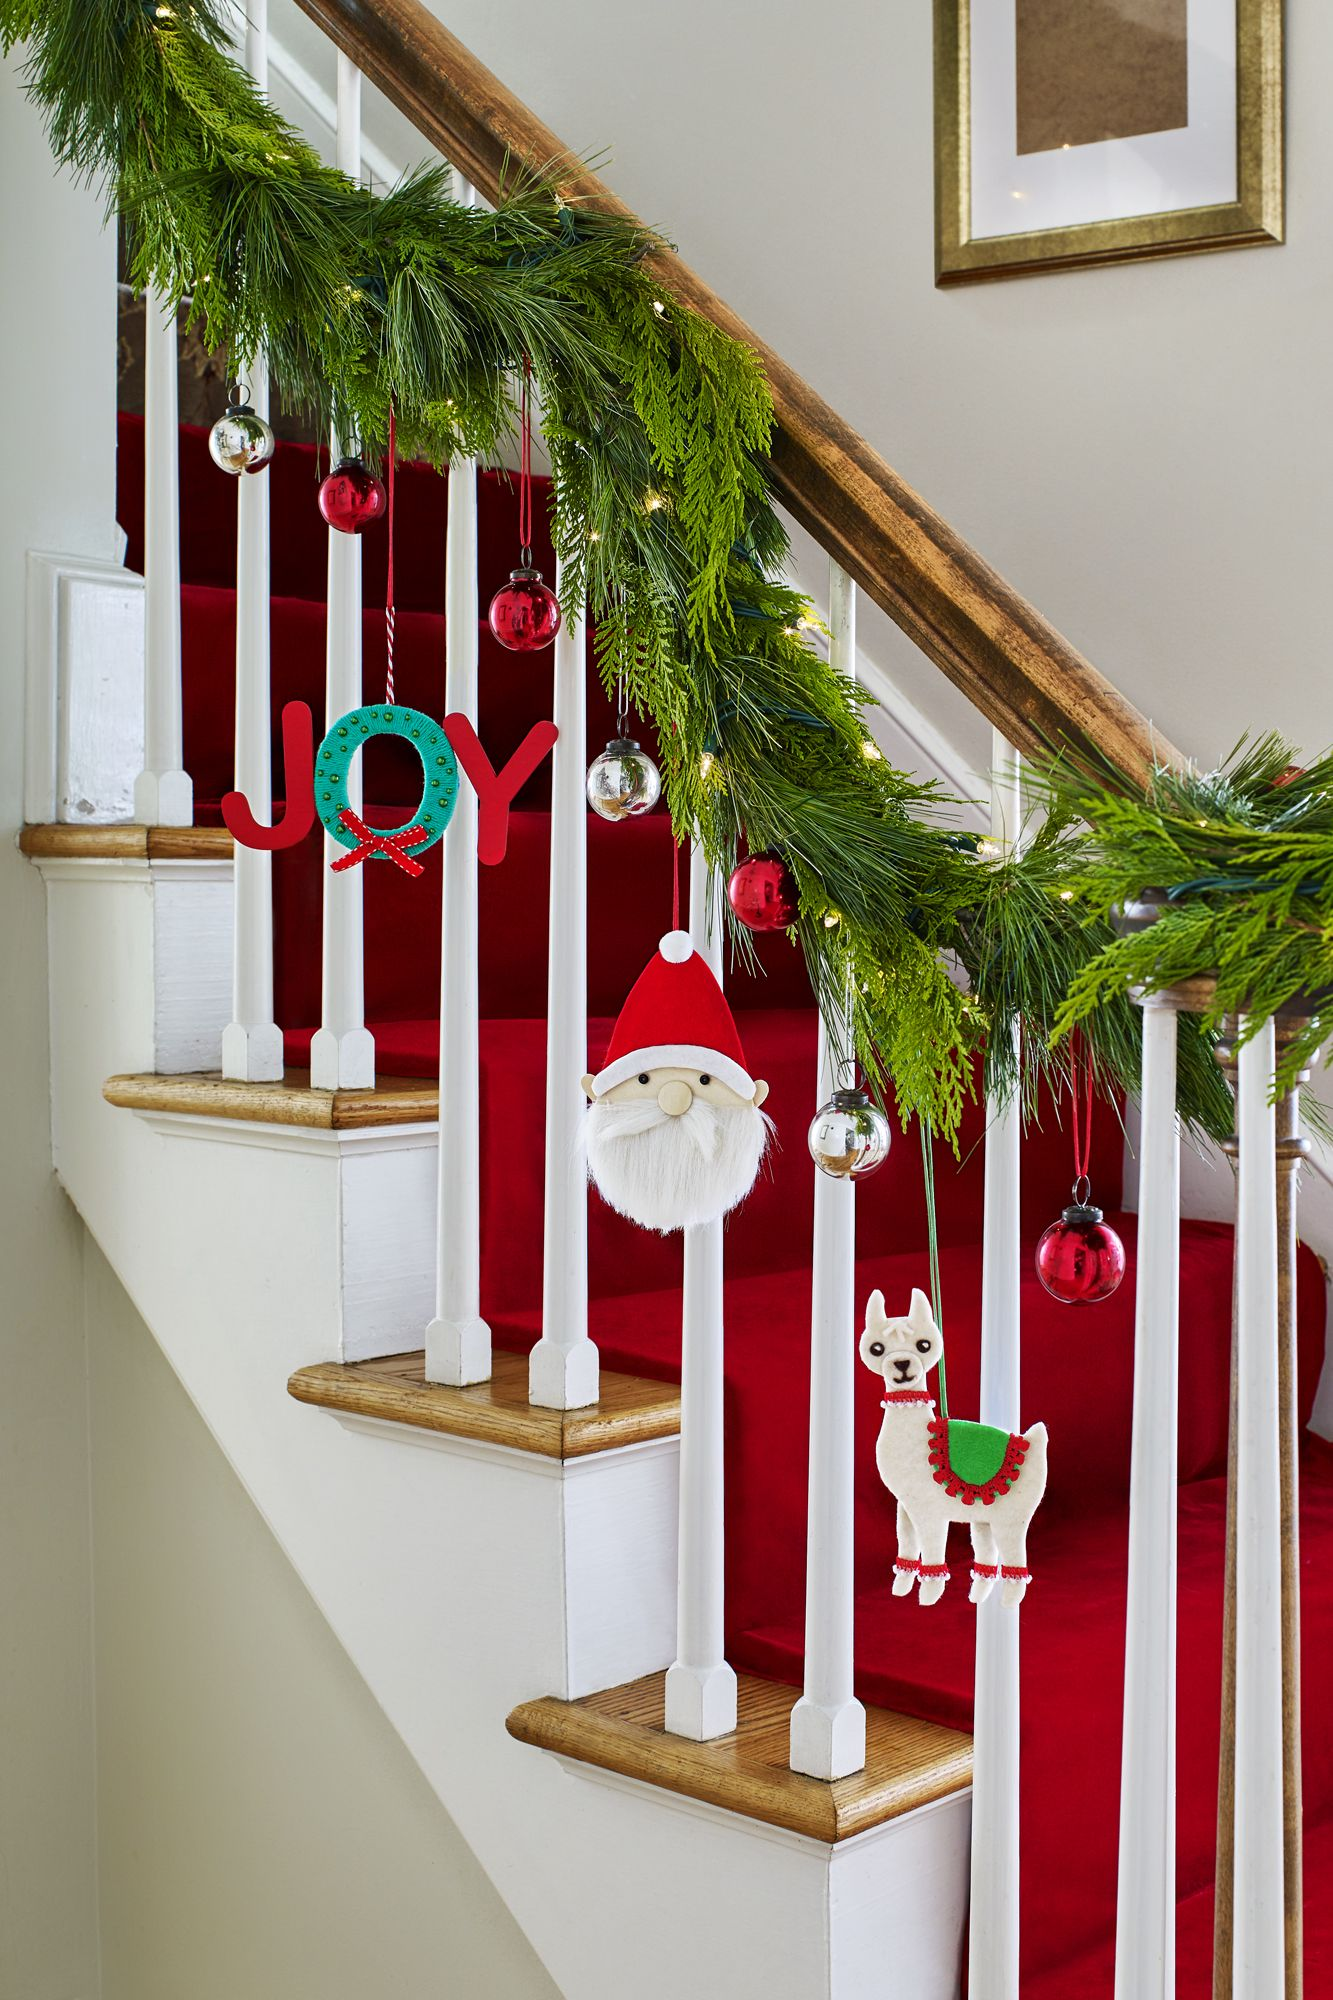 55 easy diy christmas decorations homemade ideas for holiday decorating